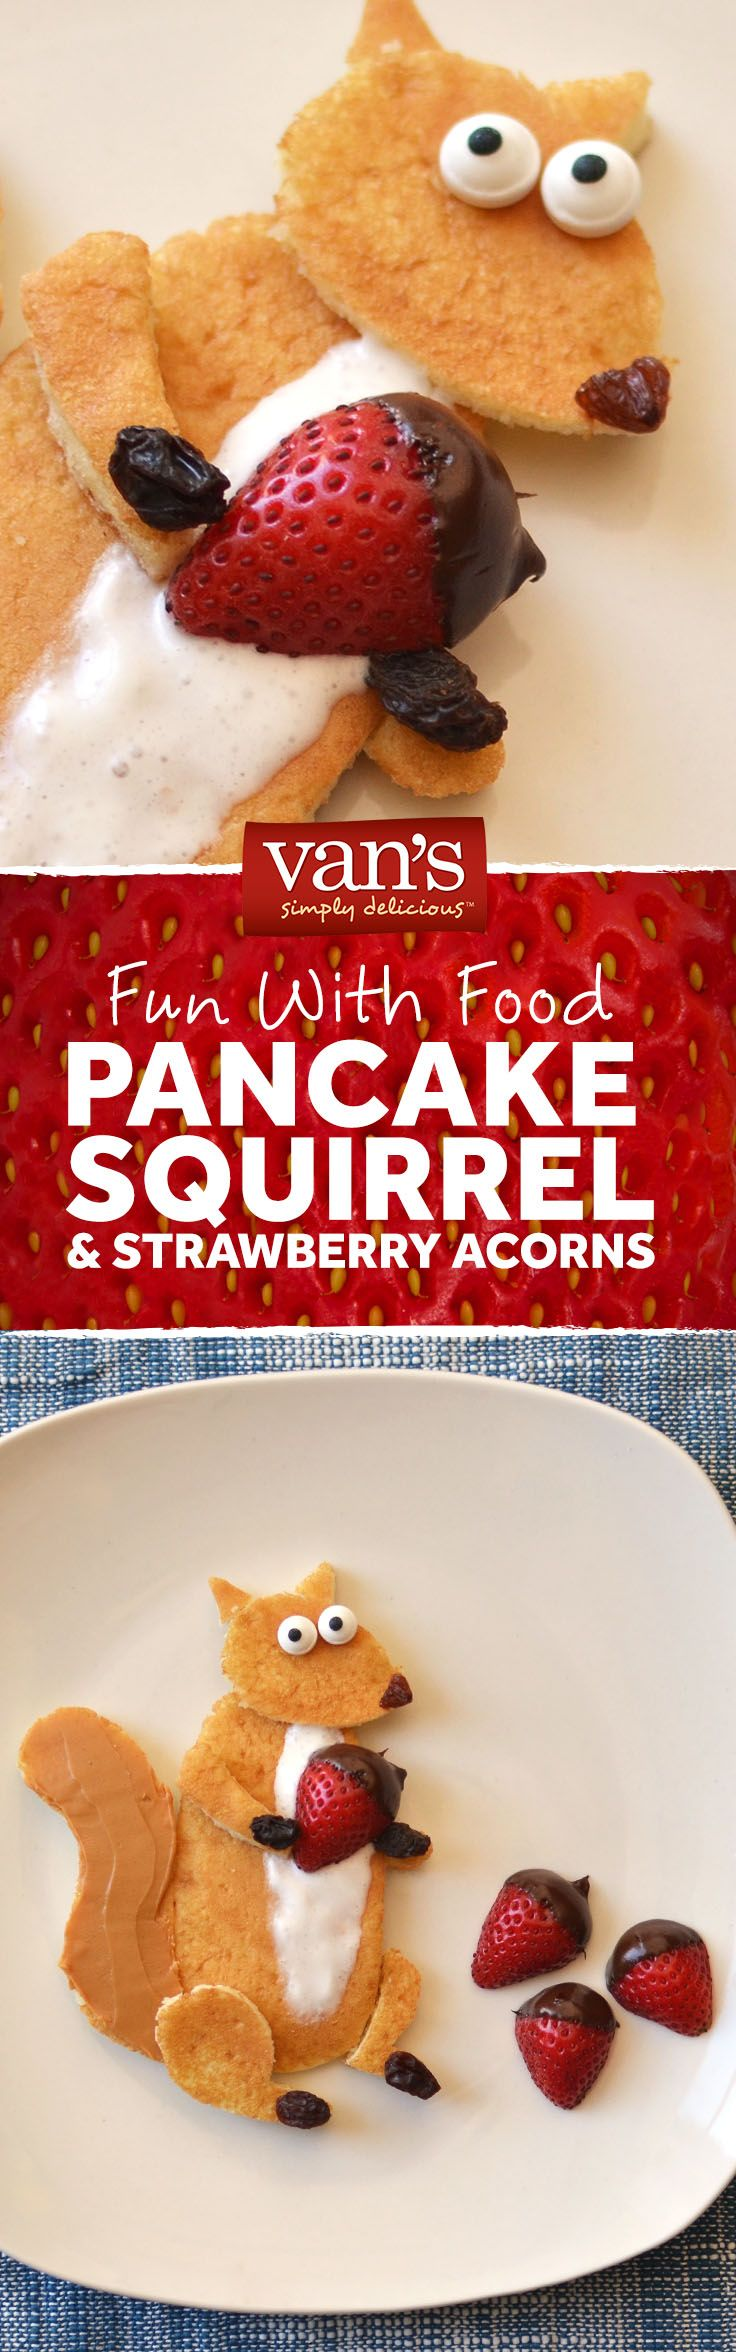 When breakfast gets a little nutty! Have some fun and dish up a pancake squirrel with strawberries, raisins, whipped cream and peanut butter.